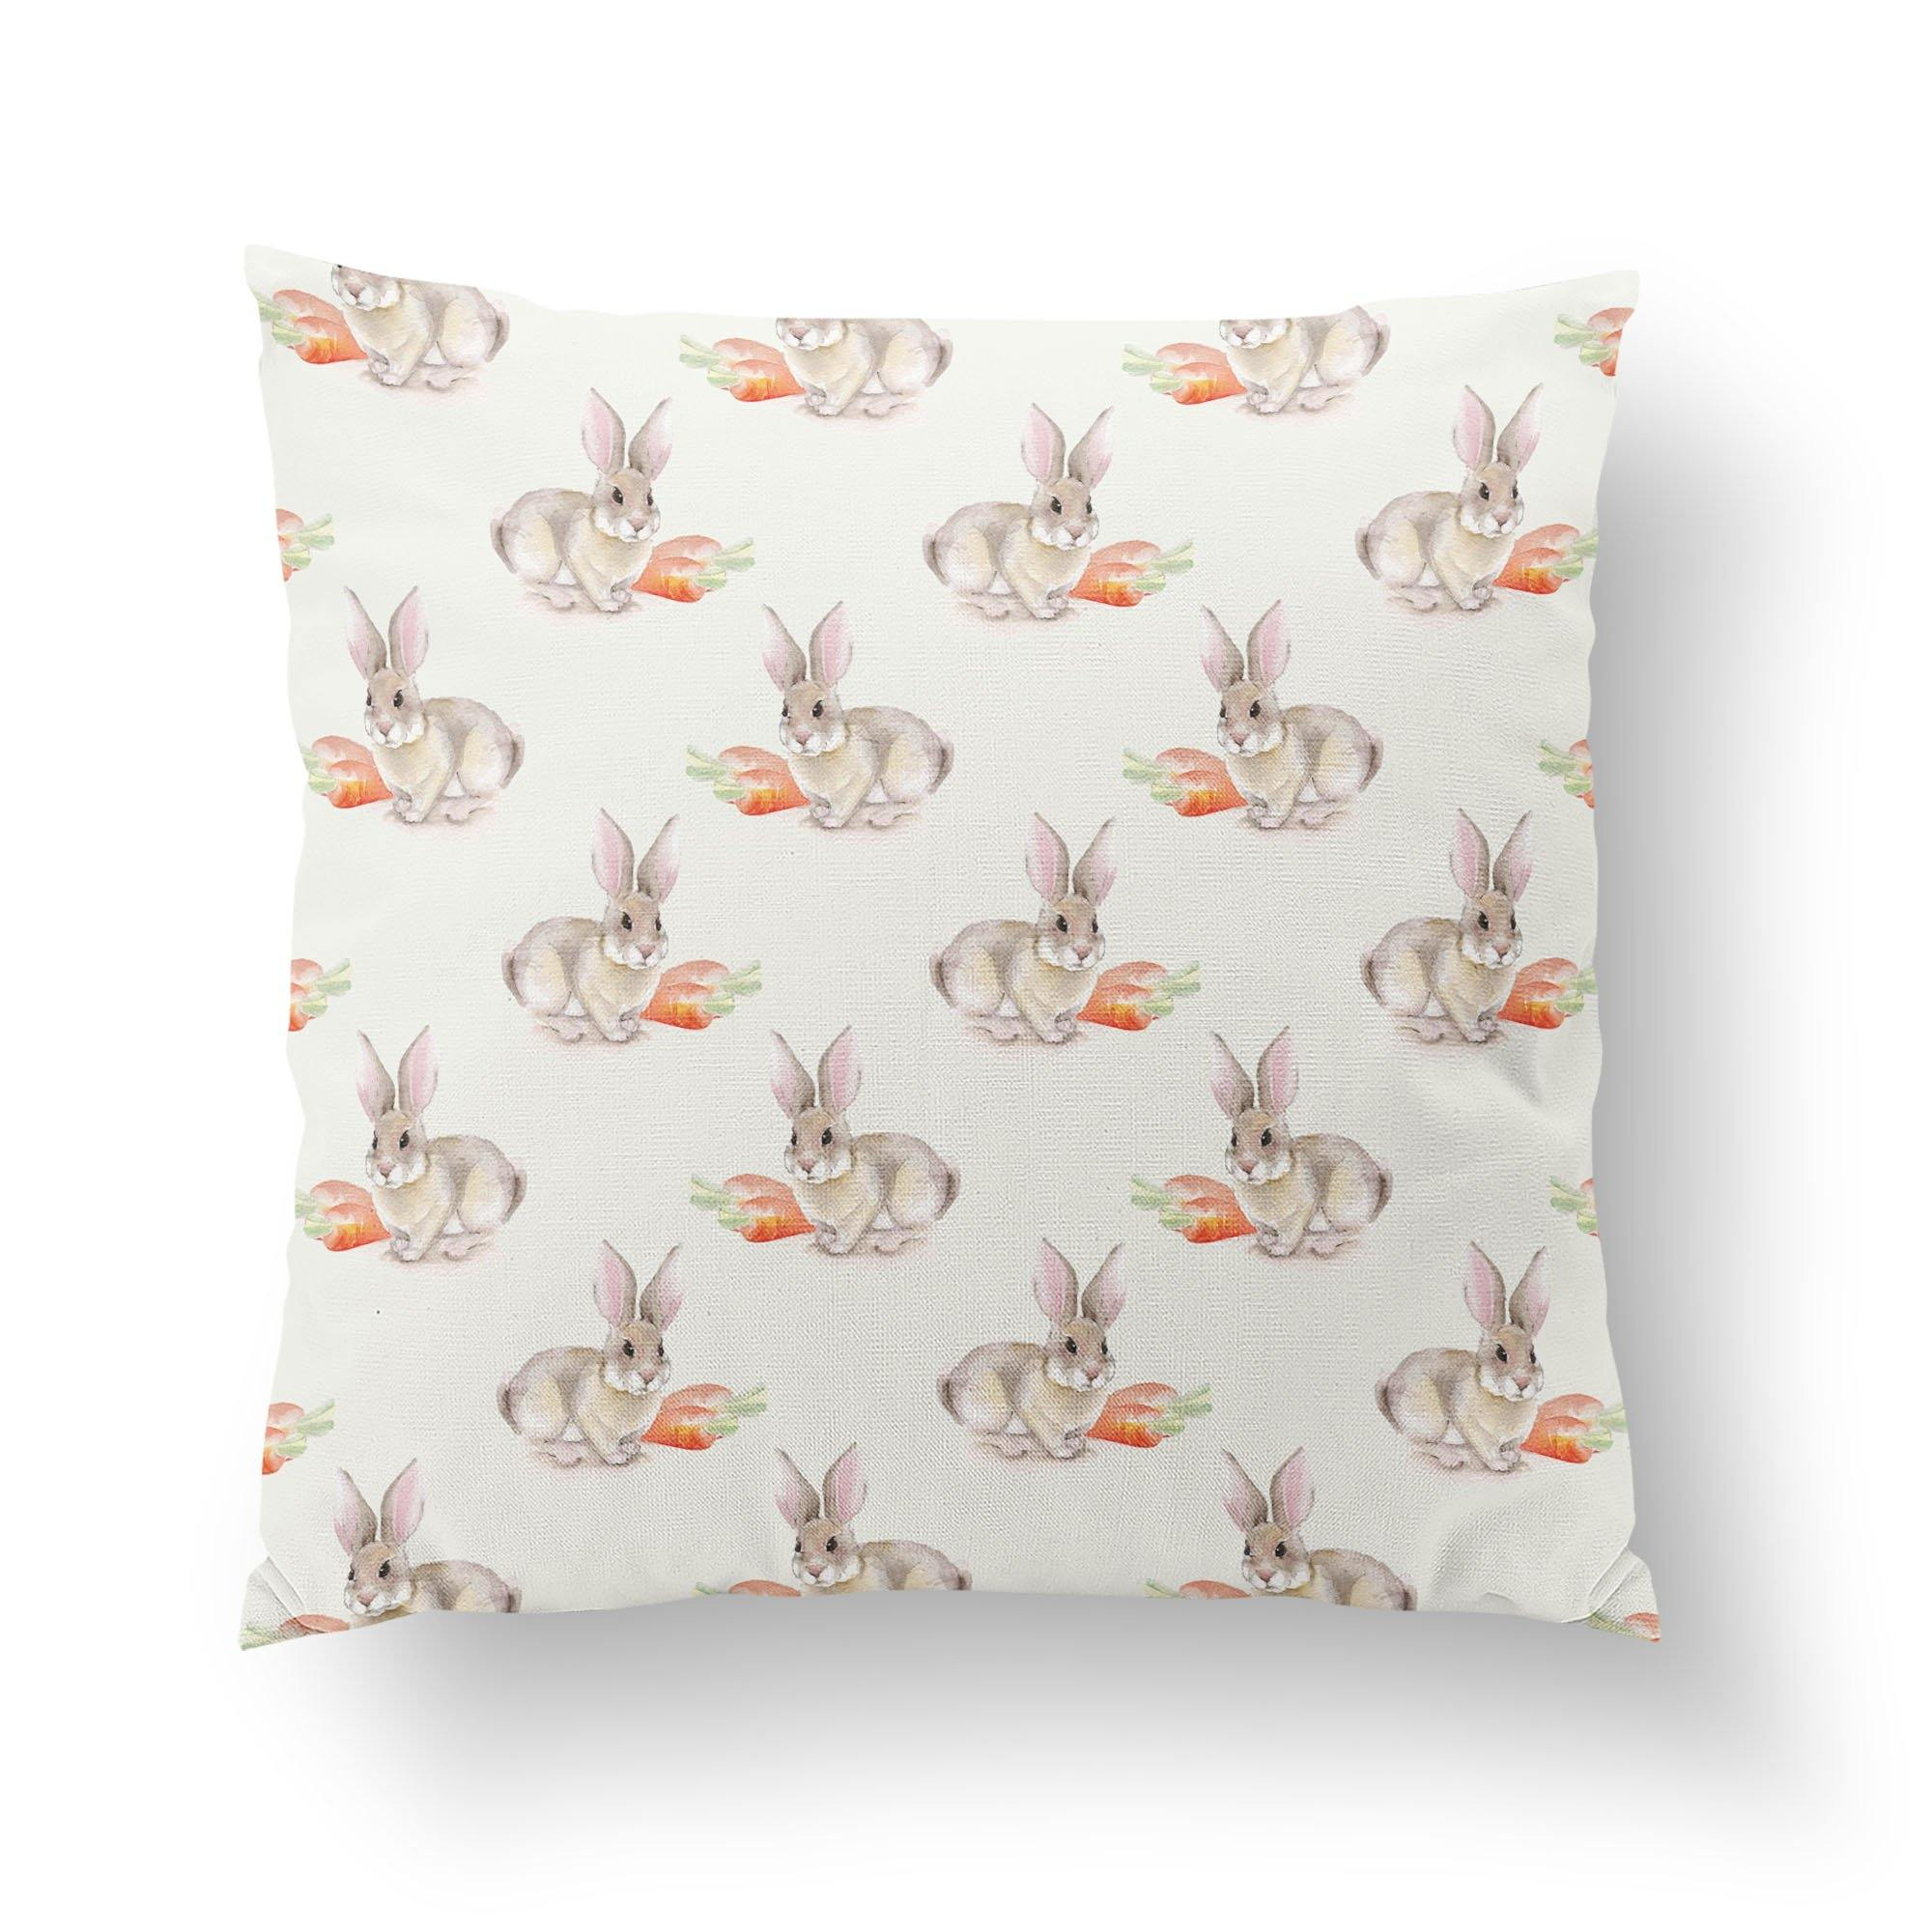 Watercolor Easter Bunny Throw Pillow-W.FRANCIS